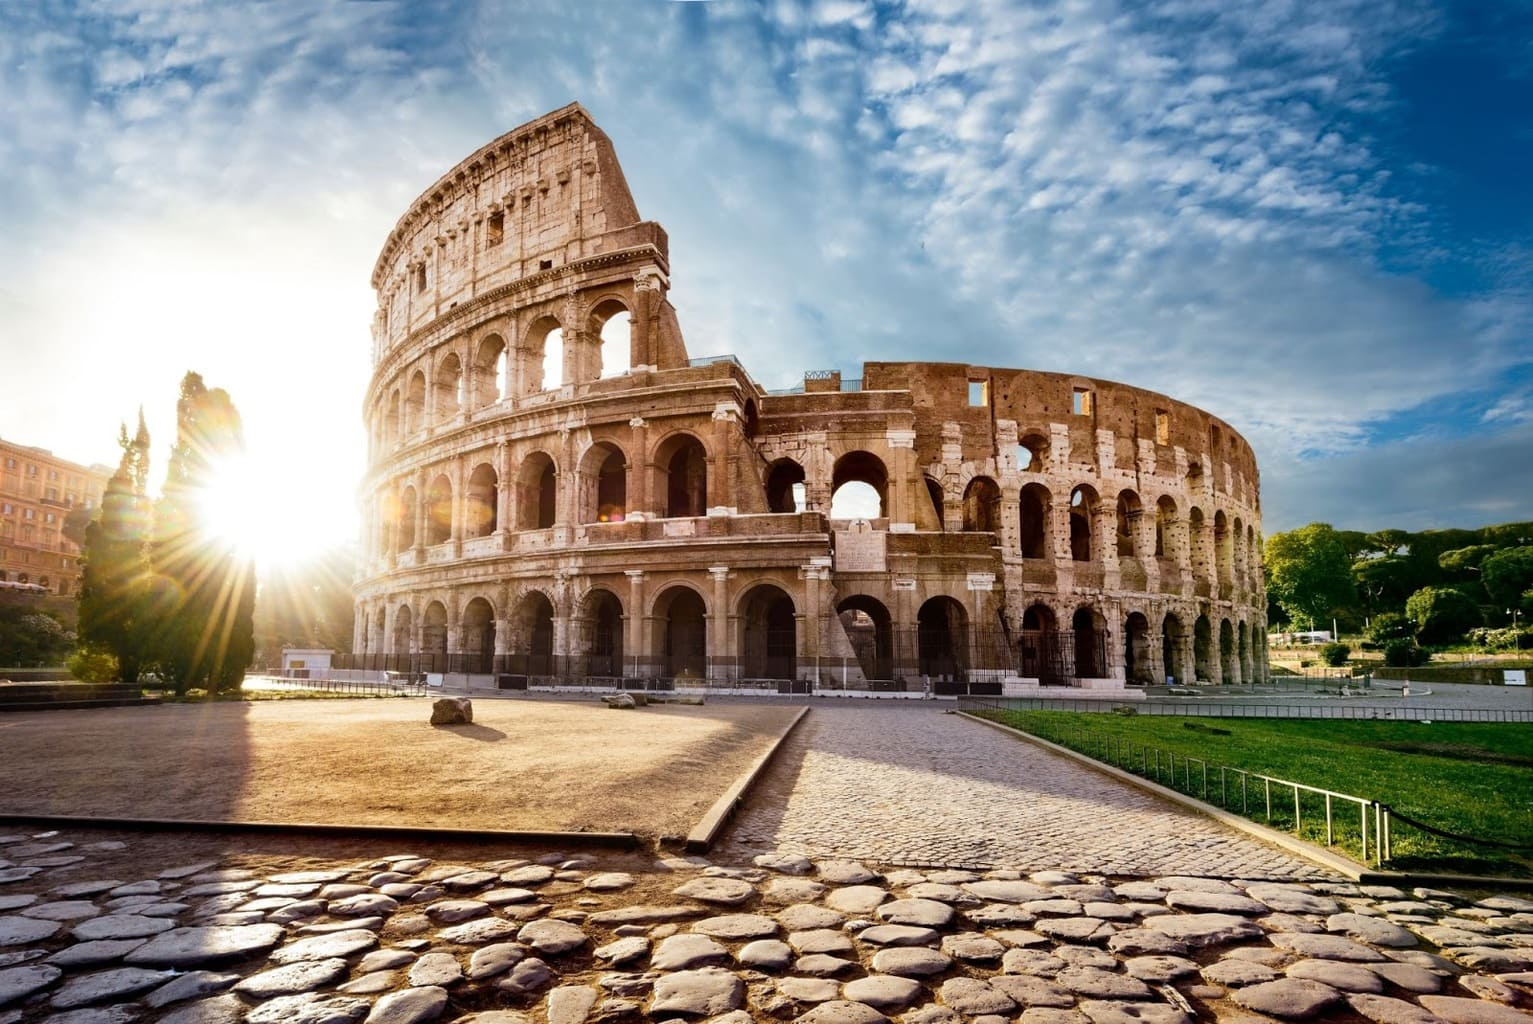 The glorious Colosseum